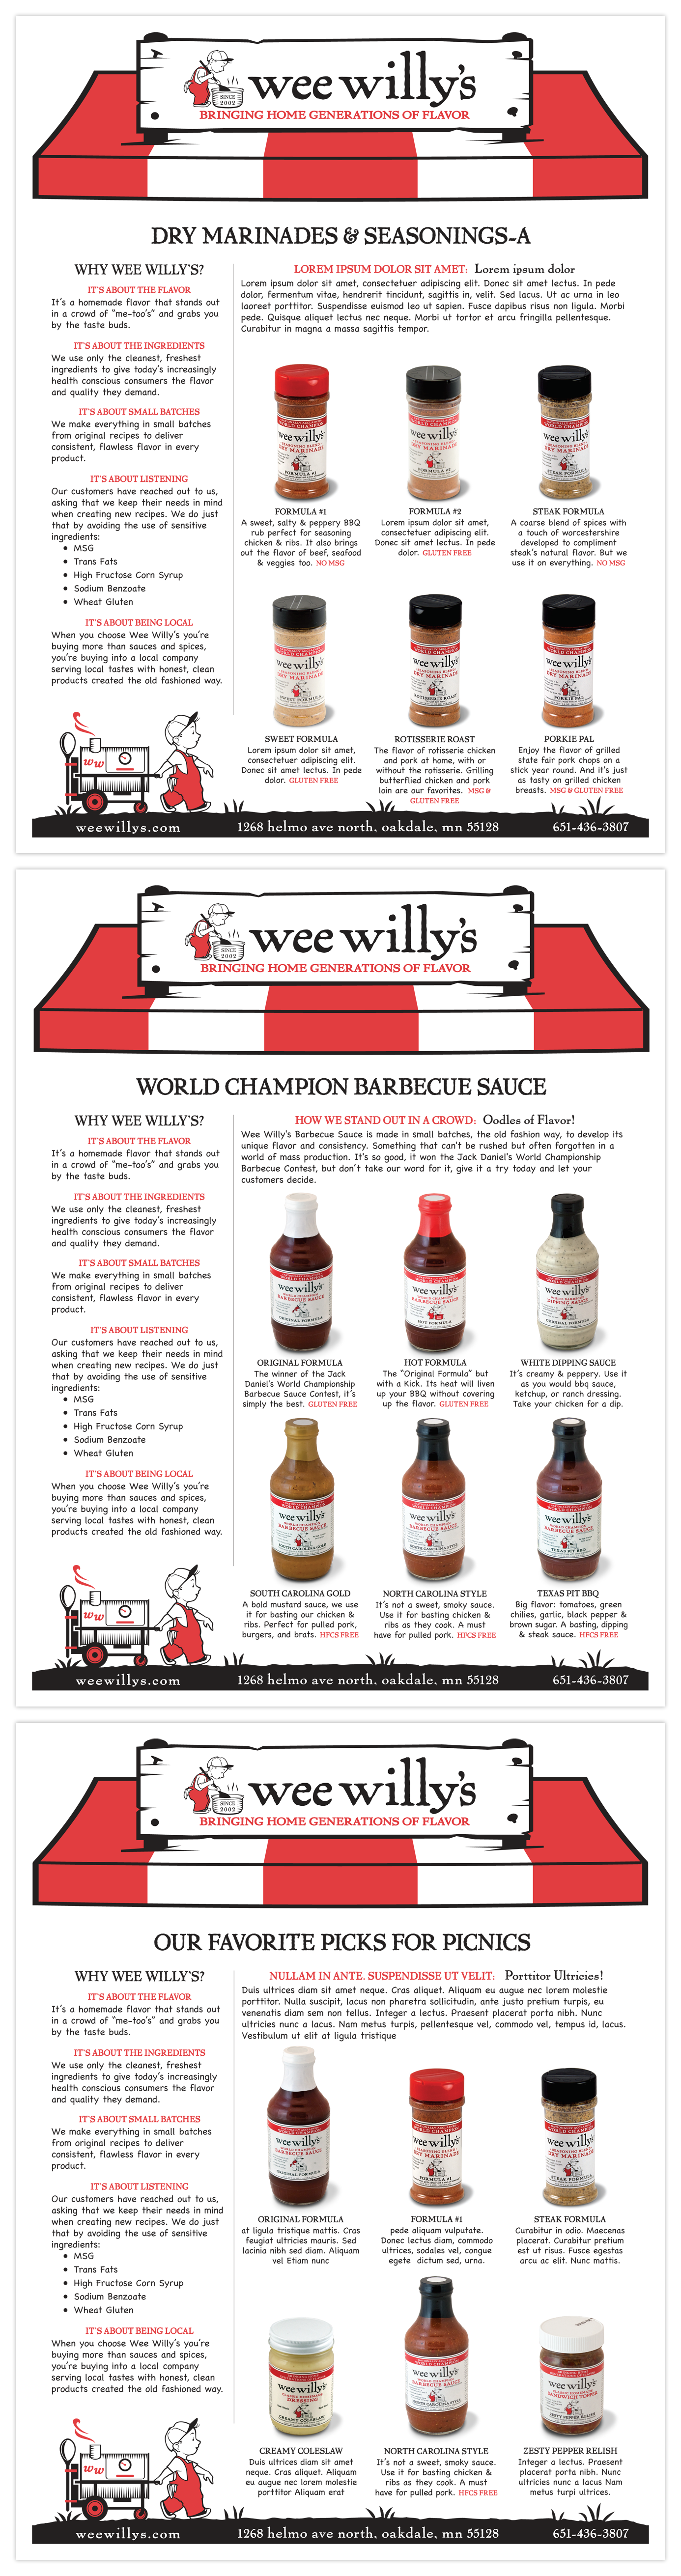 Marinades, Seasoning and Sauces Product Sheet - Sell Sheets, Retail | Team: Colin Hooker, creative director; Andrzej Zalasinski, designer, product photography; Joel Dexter, digital imaging | Agency: Hooker and Company | Client: Wee Willy's